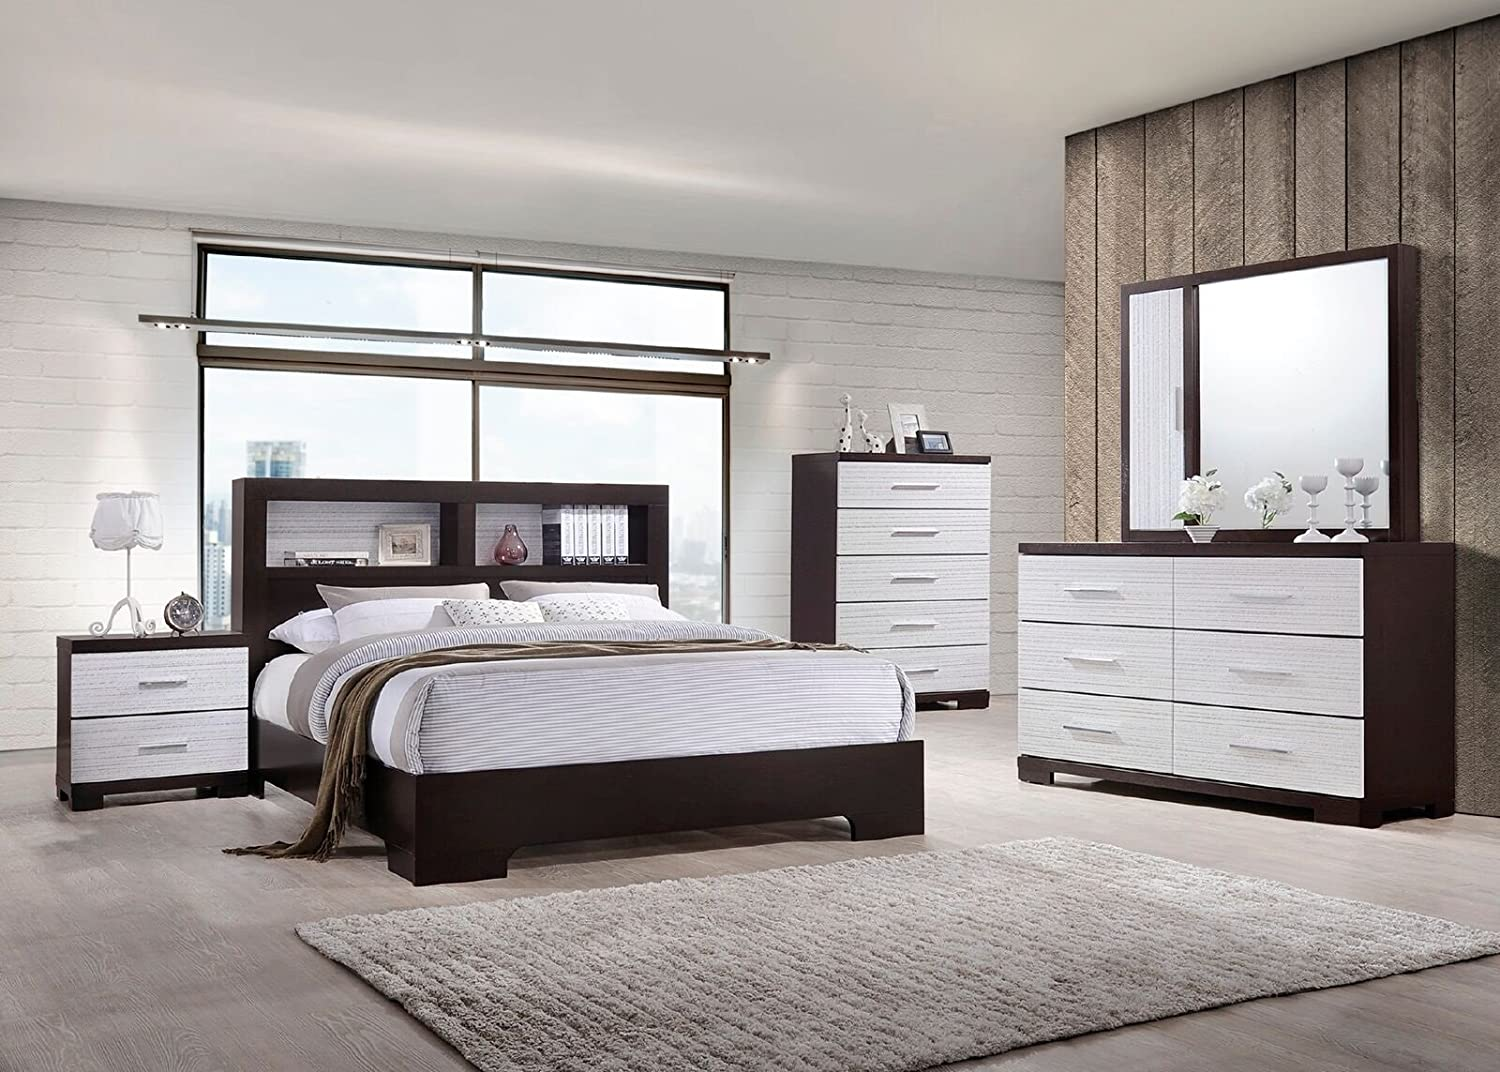 Amazon Com Classic Bedroom Furniture White Dark Brown Eastern King Size Bed 4pc Set Modern Dresser Mirror Nightstand Bedframe W Shelf Hb Kitchen Dining,Colours That Go With Purple In A Bedroom